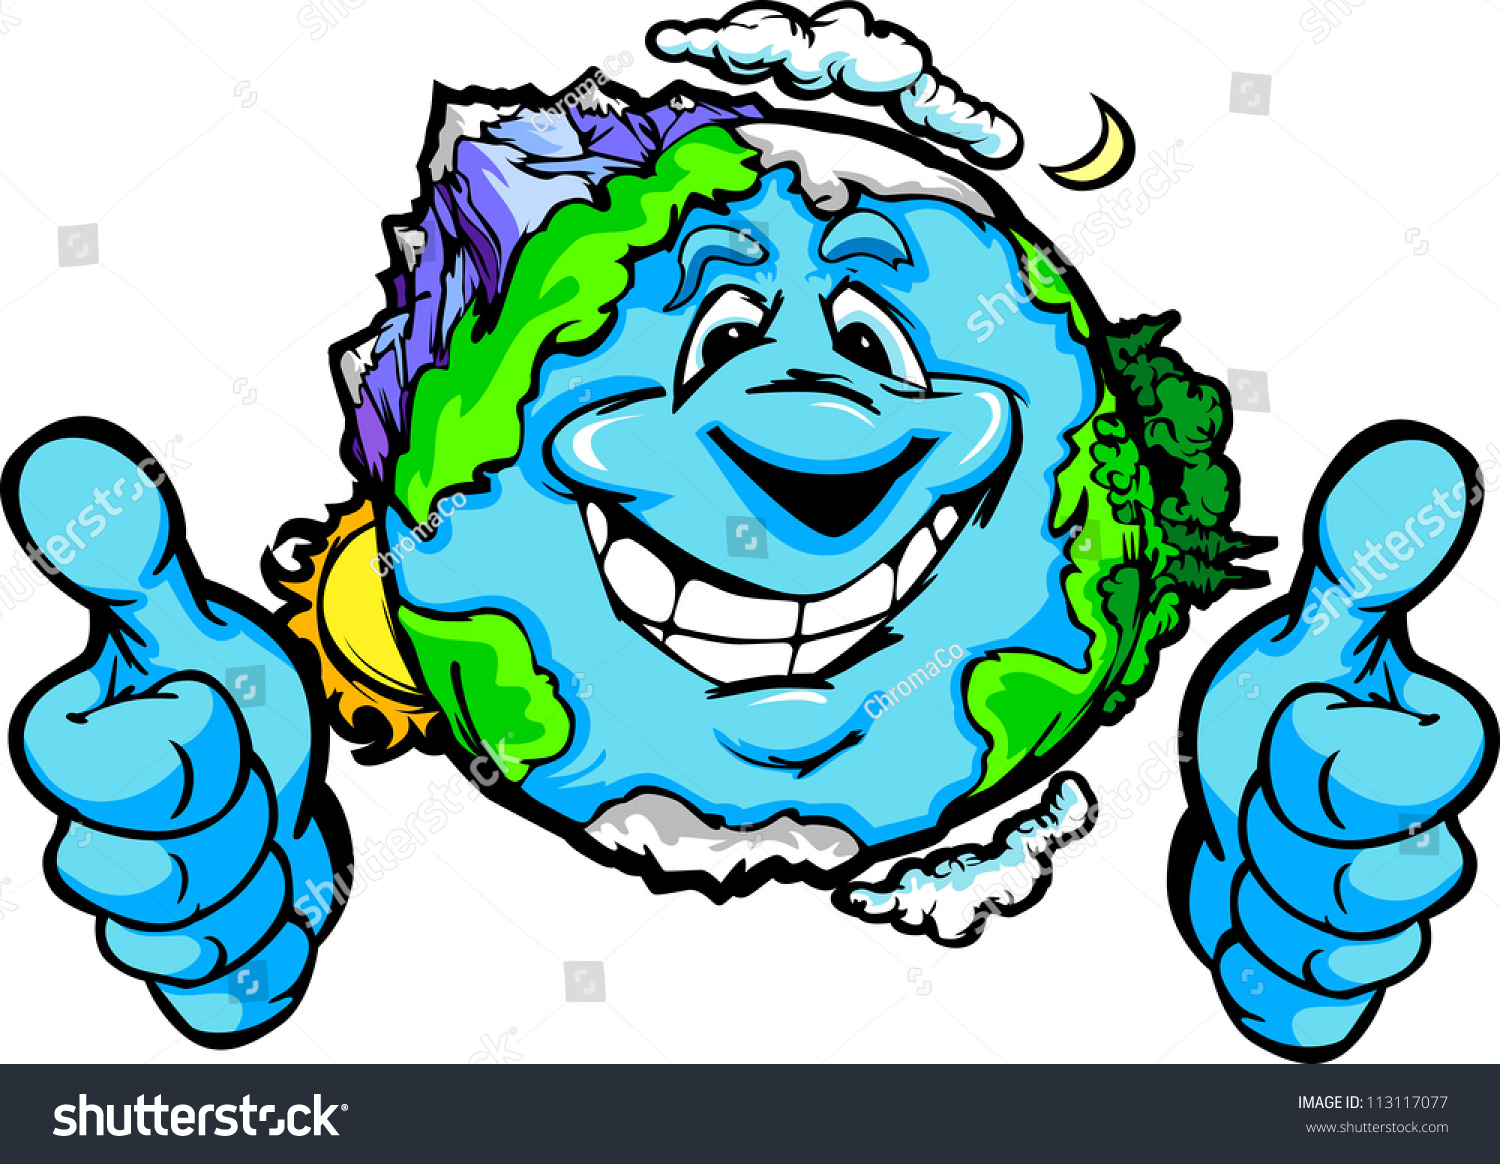 Related Keywords & Suggestions for smiling earth